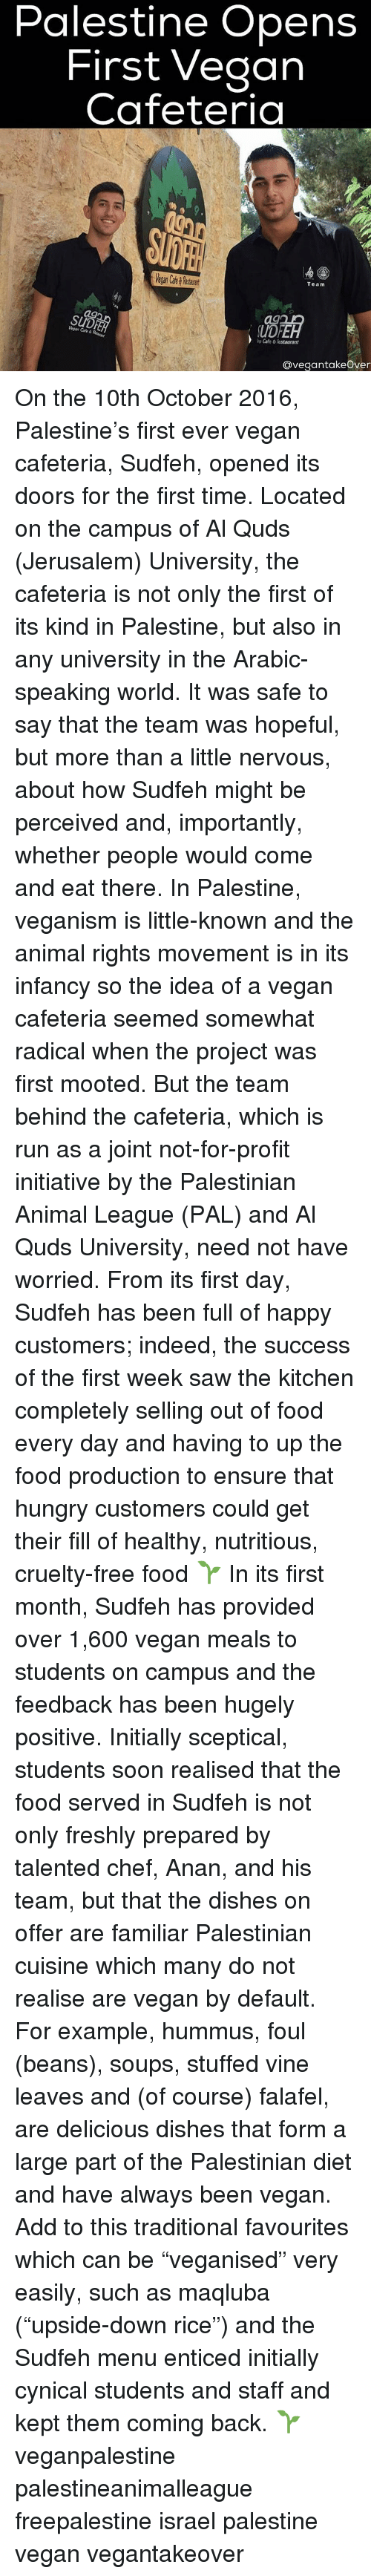 """Initialisms: Palestine Opens  First Vegan  Cafeteria  Team  Vegan Cafe 6  Cafe &lestaurant  Ovegantakeover On the 10th October 2016, Palestine's first ever vegan cafeteria, Sudfeh, opened its doors for the first time. Located on the campus of Al Quds (Jerusalem) University, the cafeteria is not only the first of its kind in Palestine, but also in any university in the Arabic-speaking world. It was safe to say that the team was hopeful, but more than a little nervous, about how Sudfeh might be perceived and, importantly, whether people would come and eat there. In Palestine, veganism is little-known and the animal rights movement is in its infancy so the idea of a vegan cafeteria seemed somewhat radical when the project was first mooted. But the team behind the cafeteria, which is run as a joint not-for-profit initiative by the Palestinian Animal League (PAL) and Al Quds University, need not have worried. From its first day, Sudfeh has been full of happy customers; indeed, the success of the first week saw the kitchen completely selling out of food every day and having to up the food production to ensure that hungry customers could get their fill of healthy, nutritious, cruelty-free food 🌱 In its first month, Sudfeh has provided over 1,600 vegan meals to students on campus and the feedback has been hugely positive. Initially sceptical, students soon realised that the food served in Sudfeh is not only freshly prepared by talented chef, Anan, and his team, but that the dishes on offer are familiar Palestinian cuisine which many do not realise are vegan by default. For example, hummus, foul (beans), soups, stuffed vine leaves and (of course) falafel, are delicious dishes that form a large part of the Palestinian diet and have always been vegan. Add to this traditional favourites which can be """"veganised"""" very easily, such as maqluba (""""upside-down rice"""") and the Sudfeh menu enticed initially cynical students and staff and kept them coming back. 🌱 veganpalestine palestinea"""